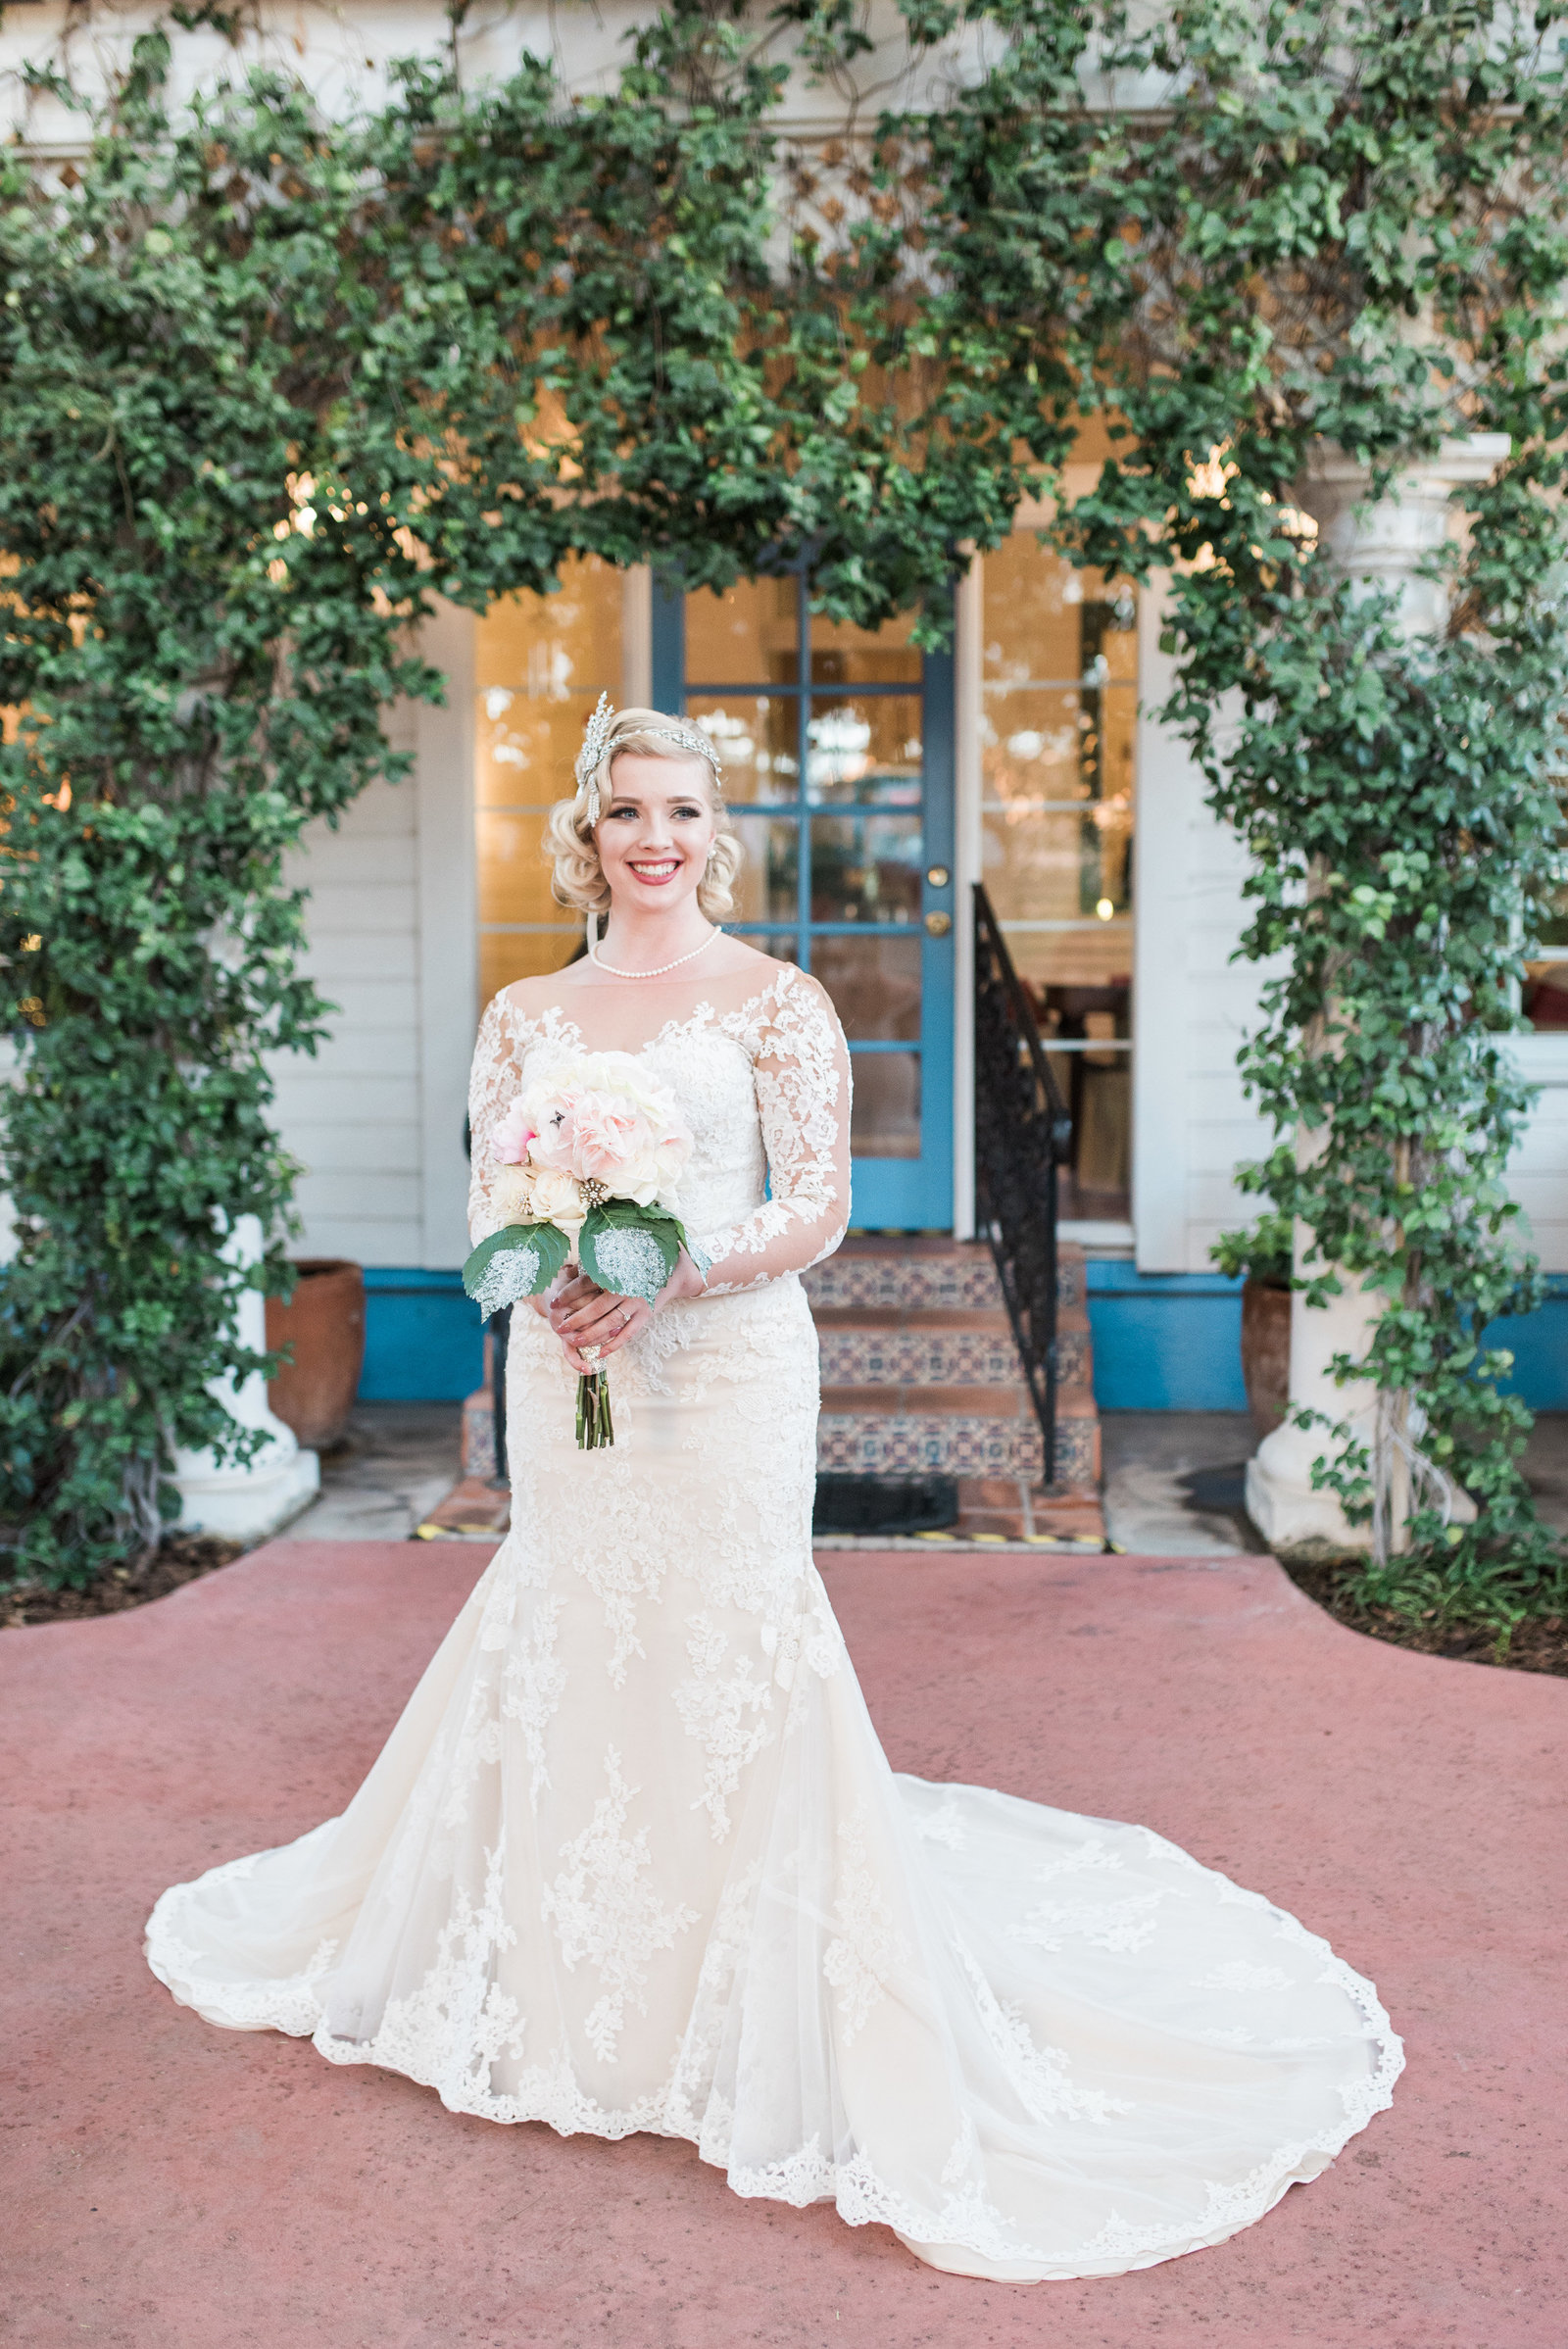 Downtown Tucson Z Mansion Wedding Photo of Classic Bride in Lace Gown with Bouquet | Tucson Wedding Photographer | West End Photography